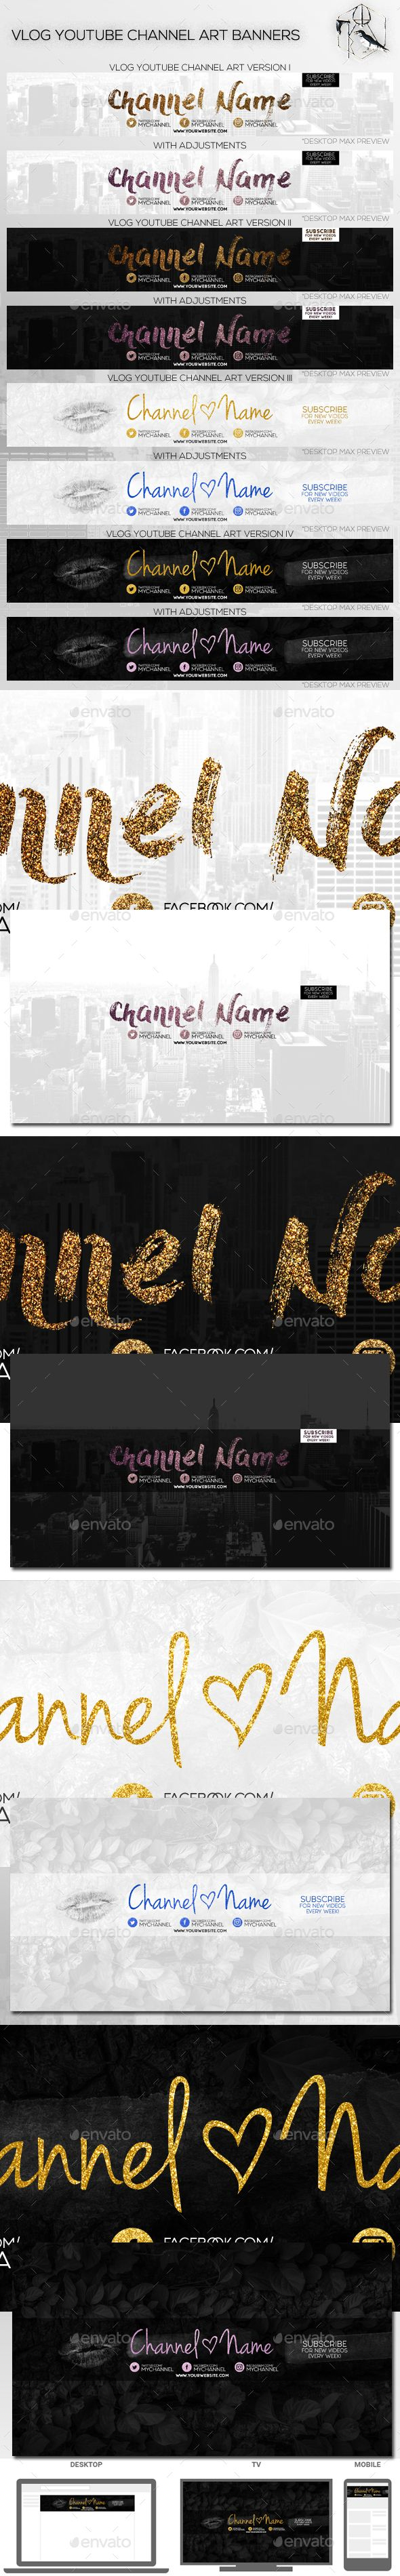 4 Vlog Youtube Channel Art Banners